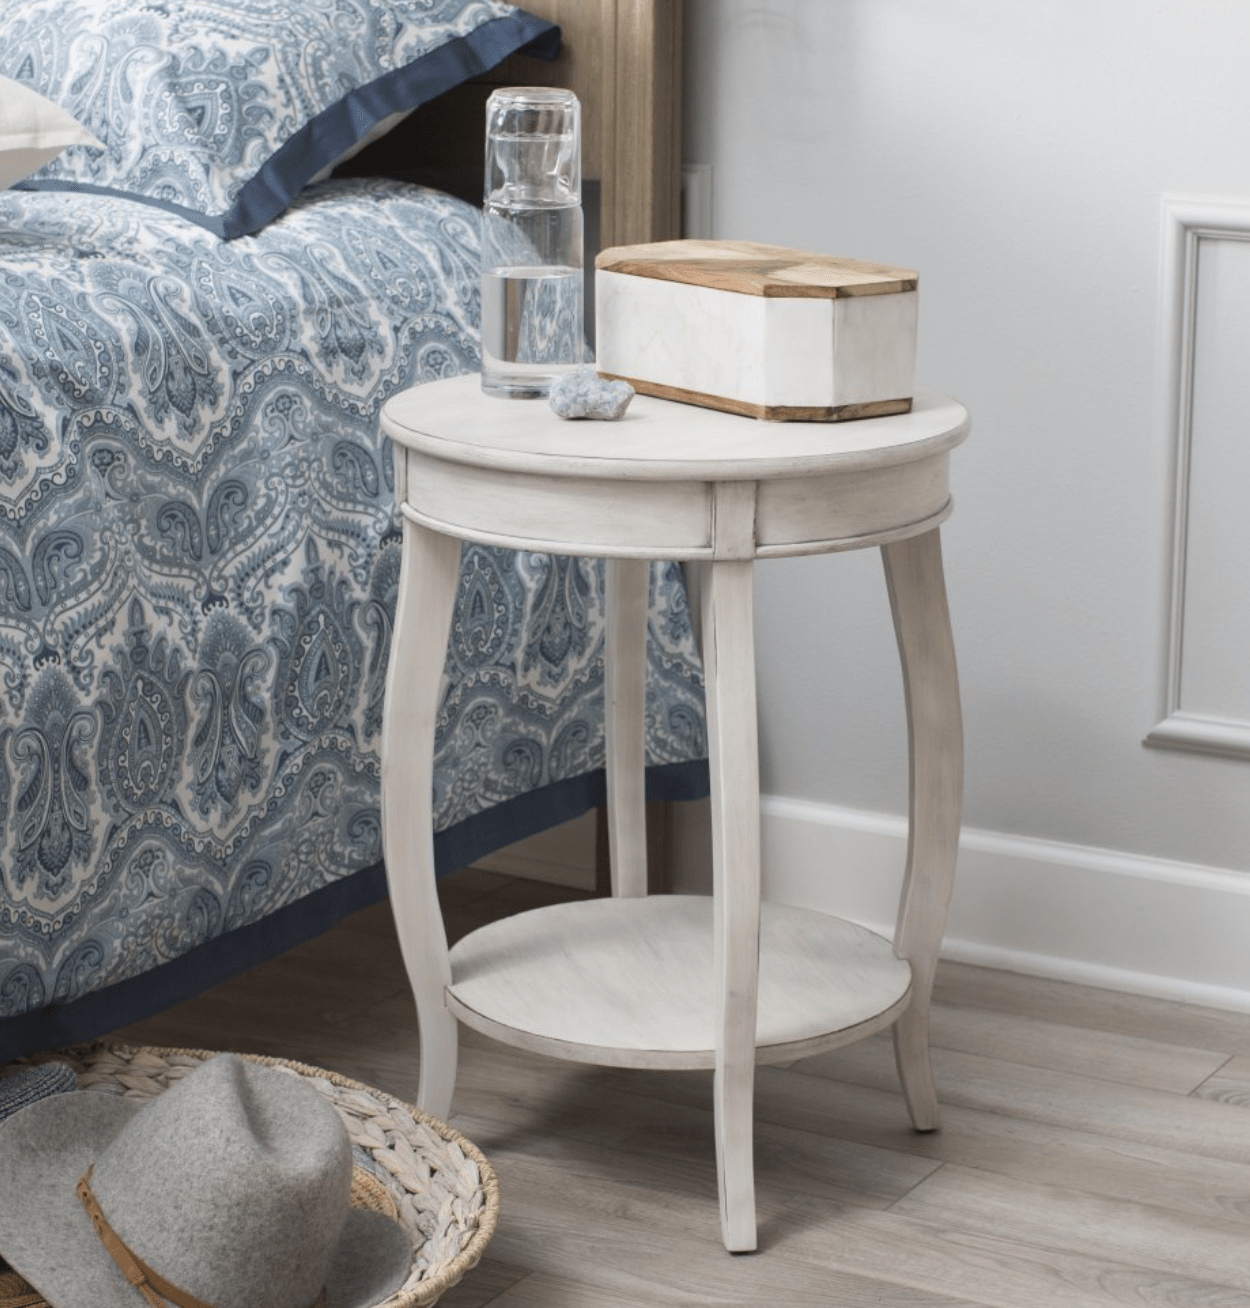 lovely small accent table for white round bedroom min tables compact with lower and upper shelf dale tiffany tulip lamp keter beer cooler winsome drawer brass side dark brown